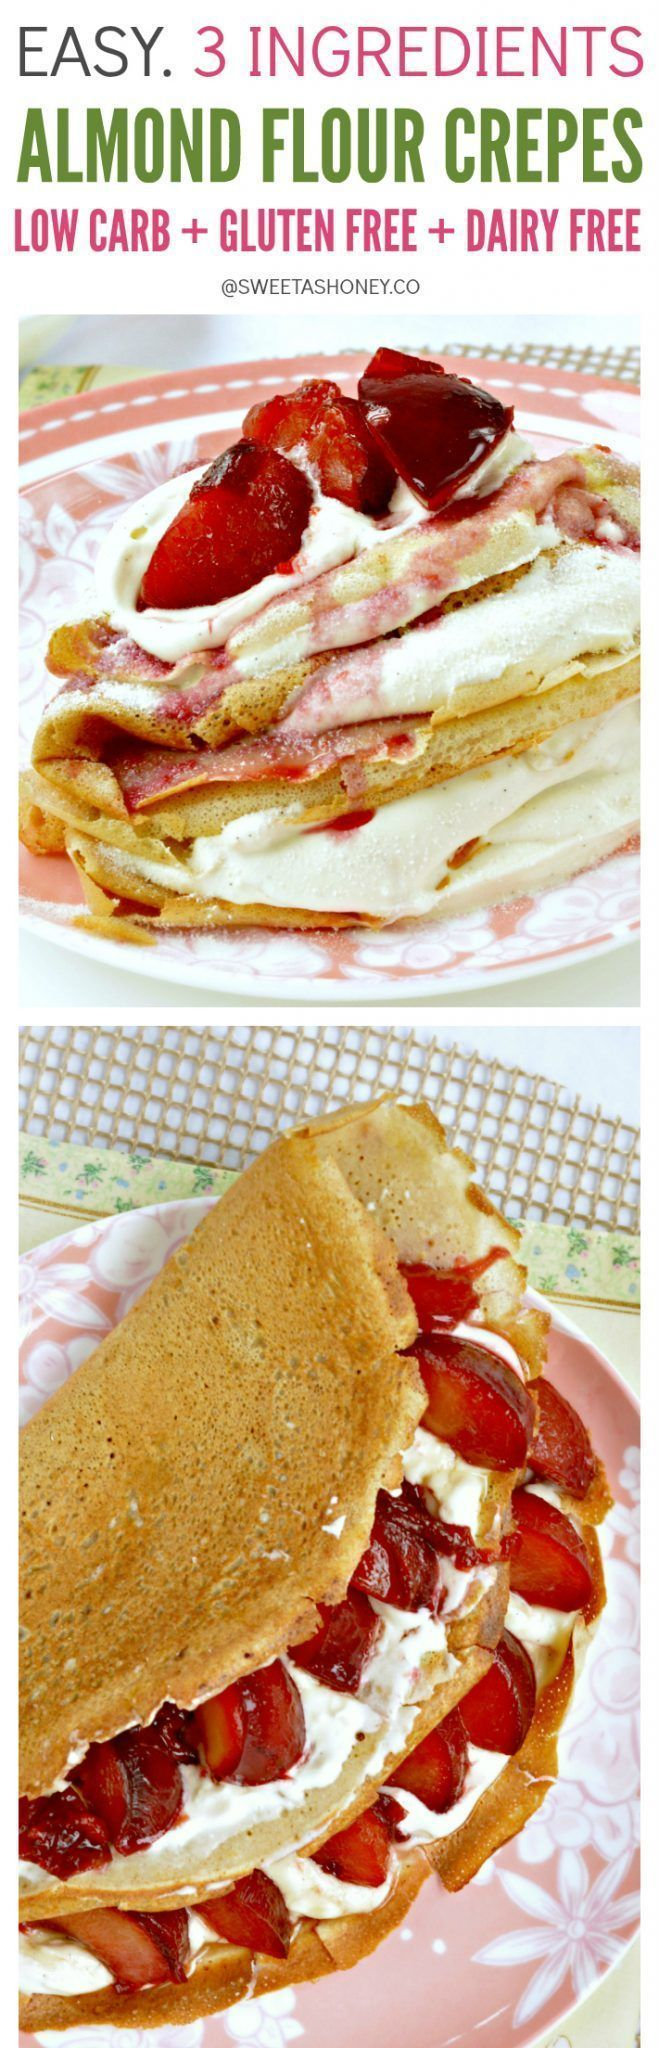 Almond Flour Crepes contains only 3.8 g net carbs per crepes. Easy 4 ingredients recipes with eggs, almond flour, coconut oil an